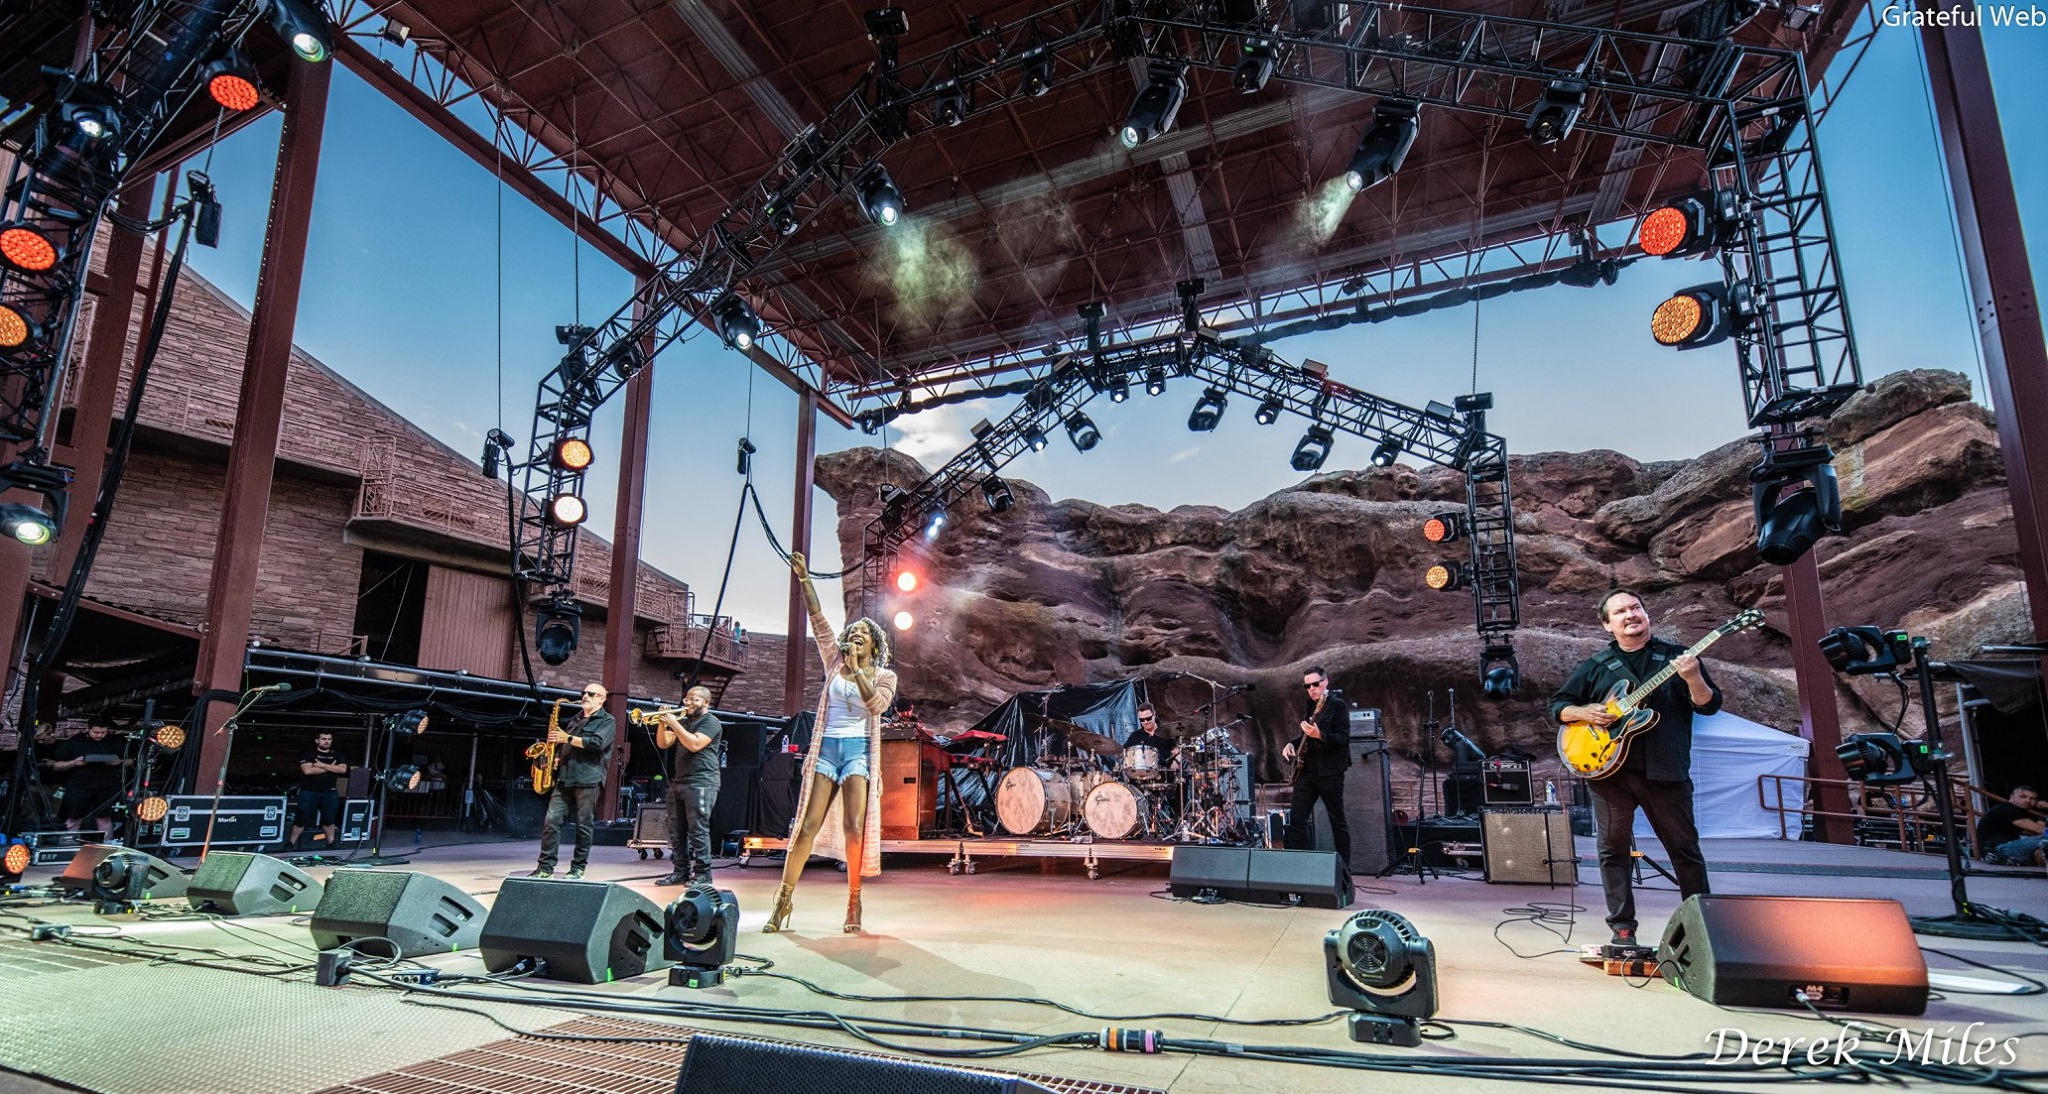 Erica Falls with Galactic | Red Rocks Amphitheatre